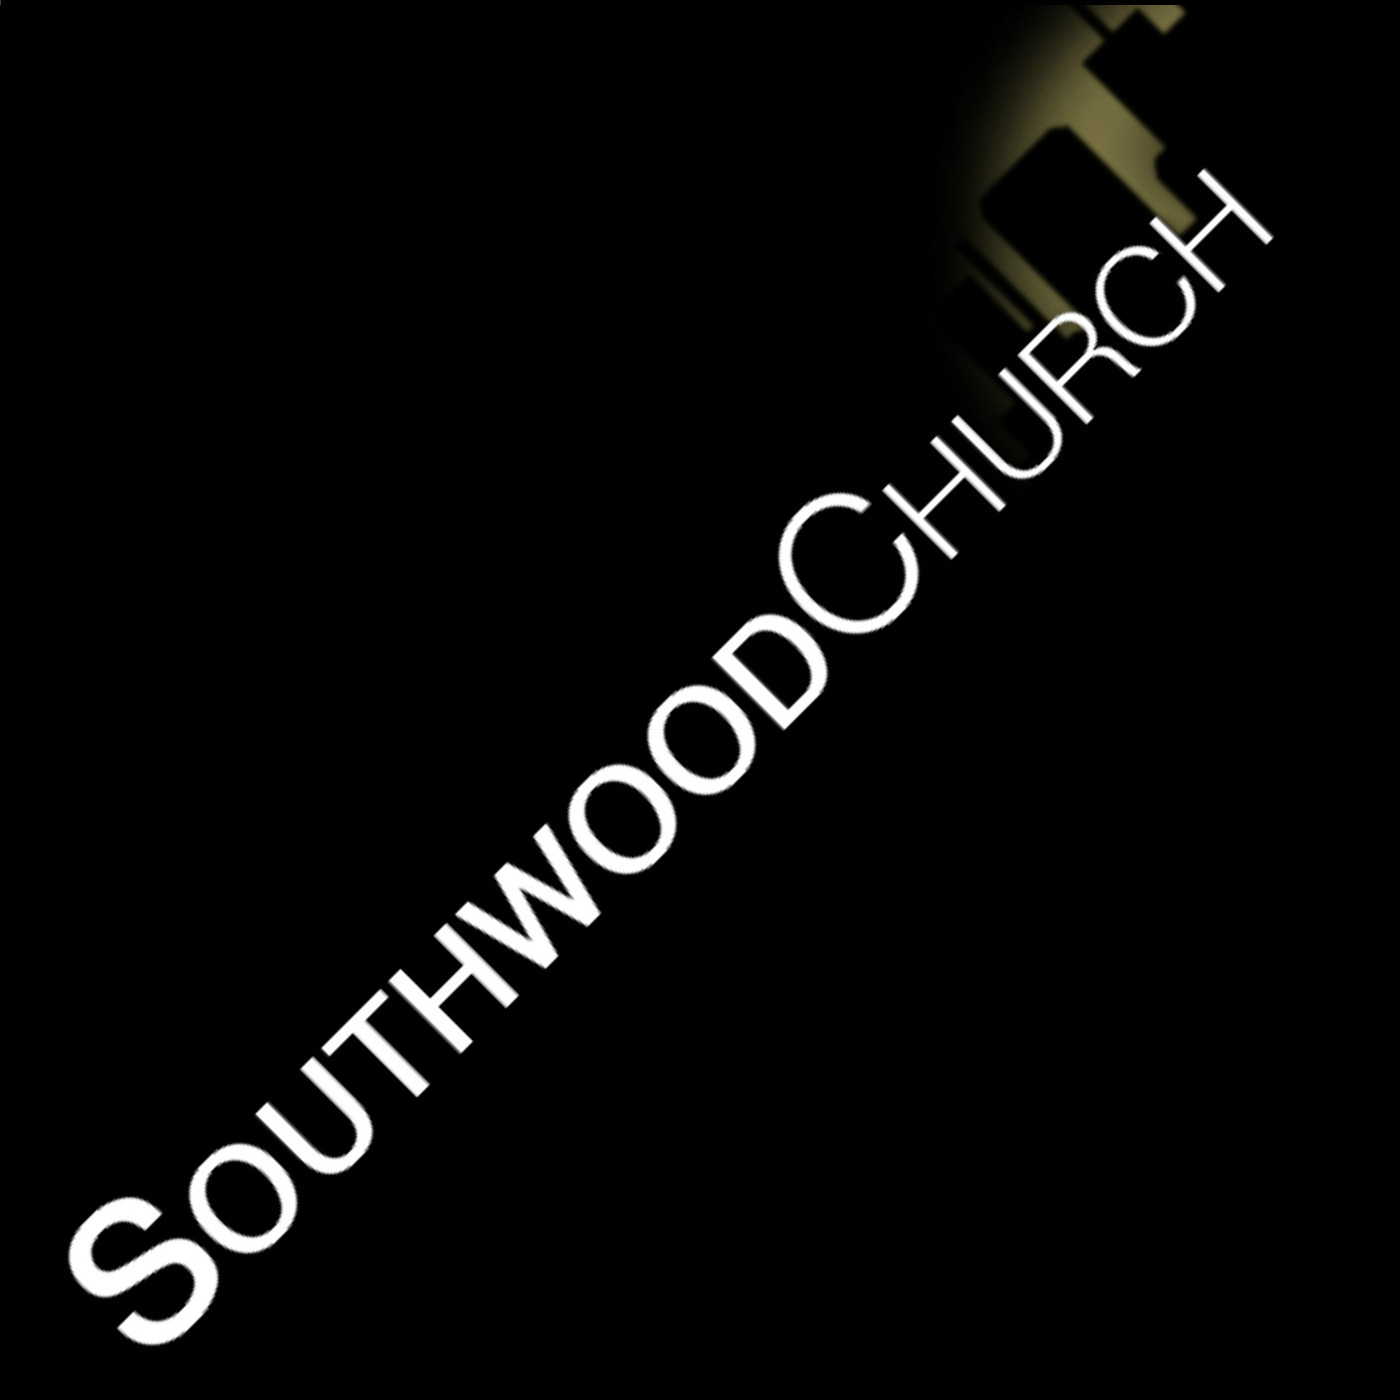 Southwood Church Services